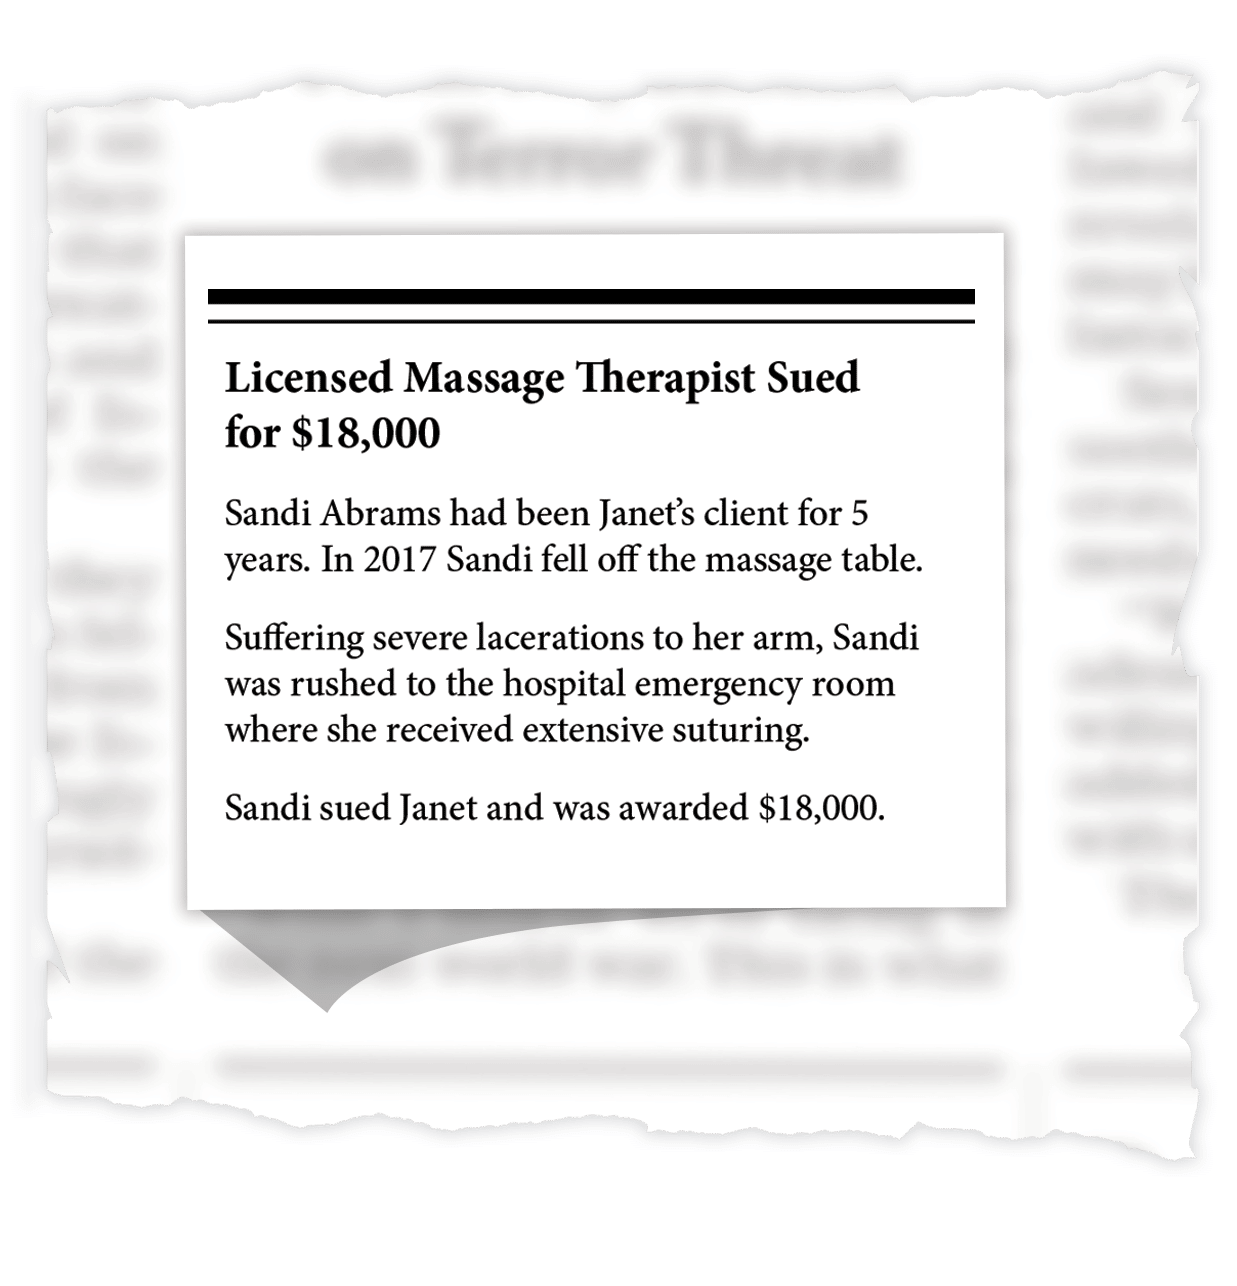 Massage Therapist Sued for $18,000